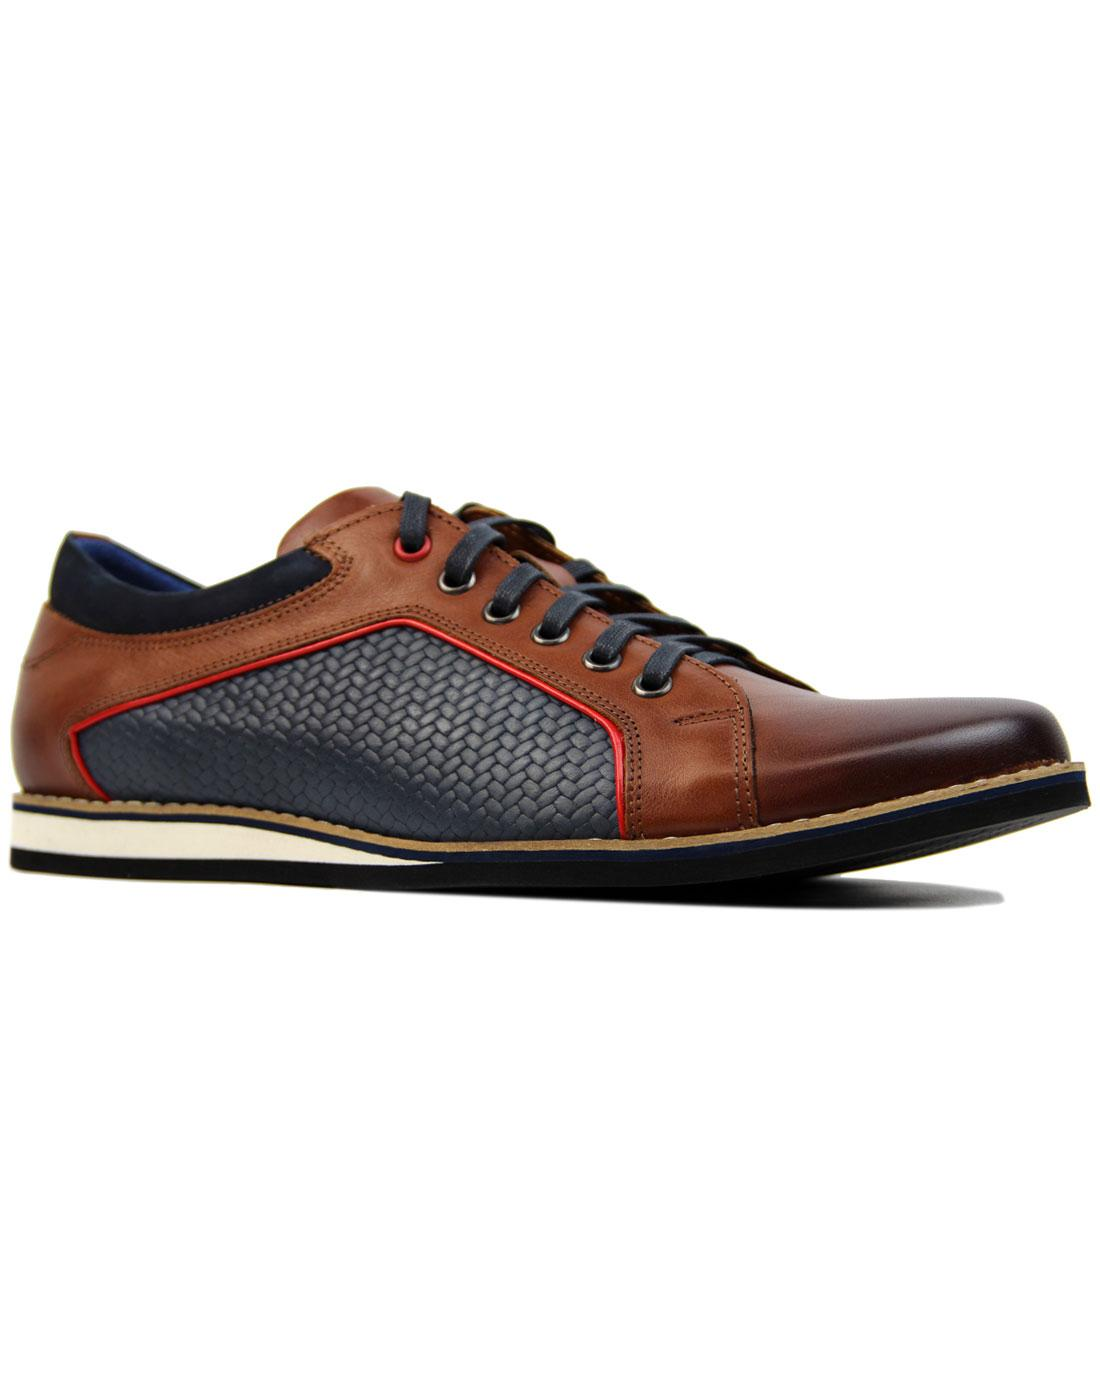 LACUZZO Retro Weave Northern Soul Trainer Shoes